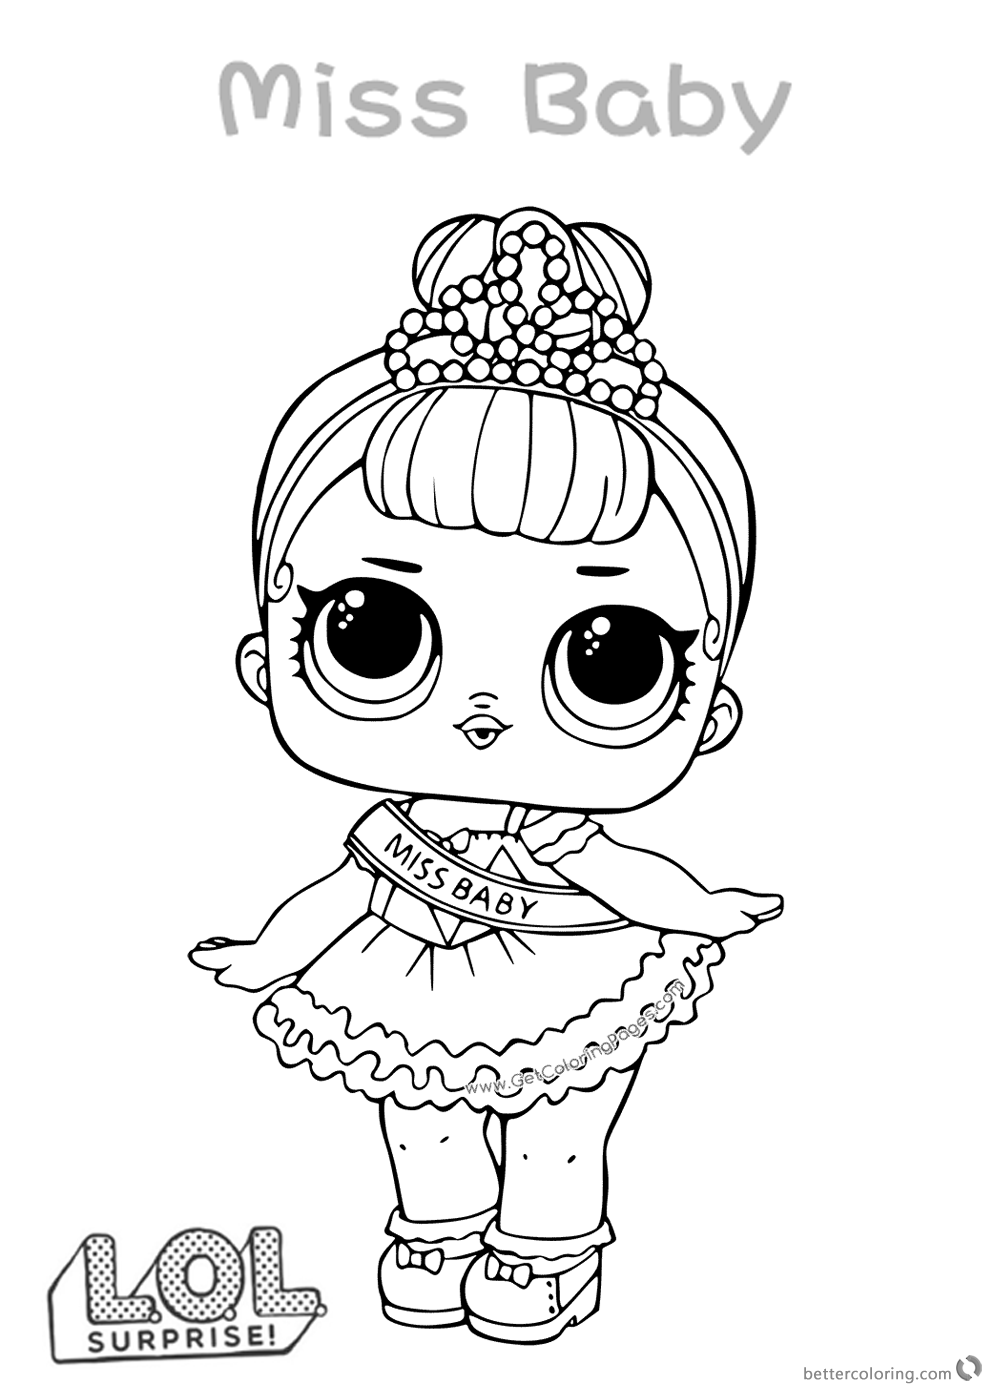 Lol Surprise Doll Coloring Pages Miss Baby Free Printable Coloring